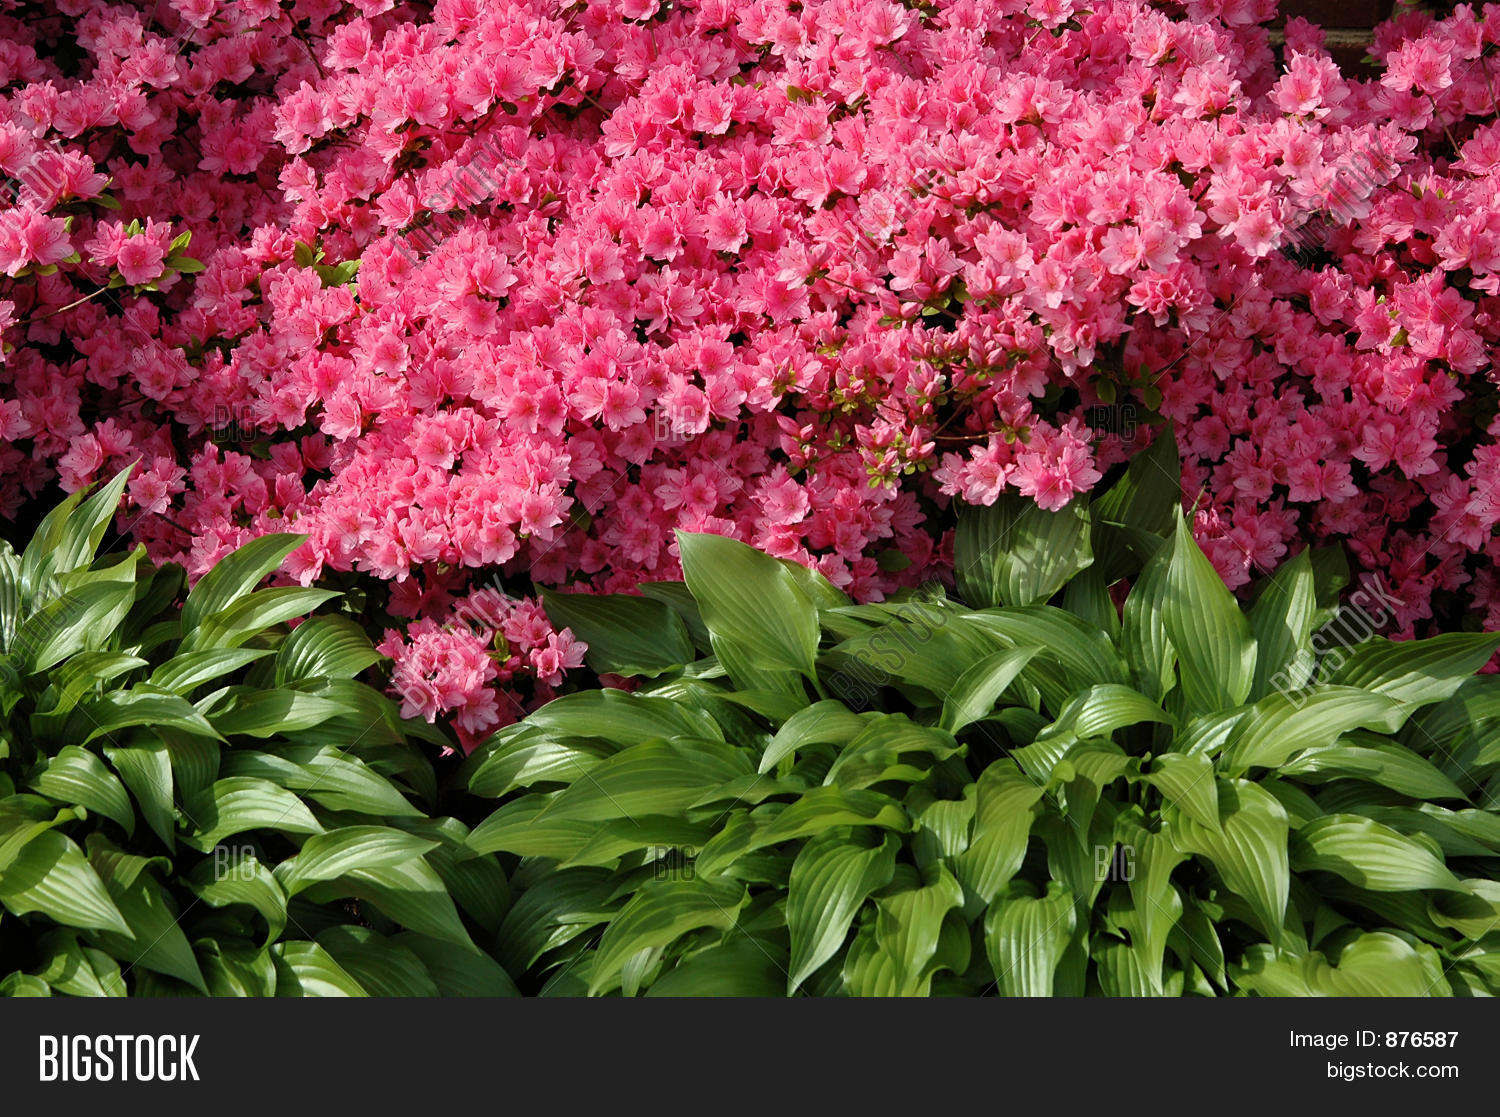 Flowering azalea bush image photo bigstock for Arbustos para jardin